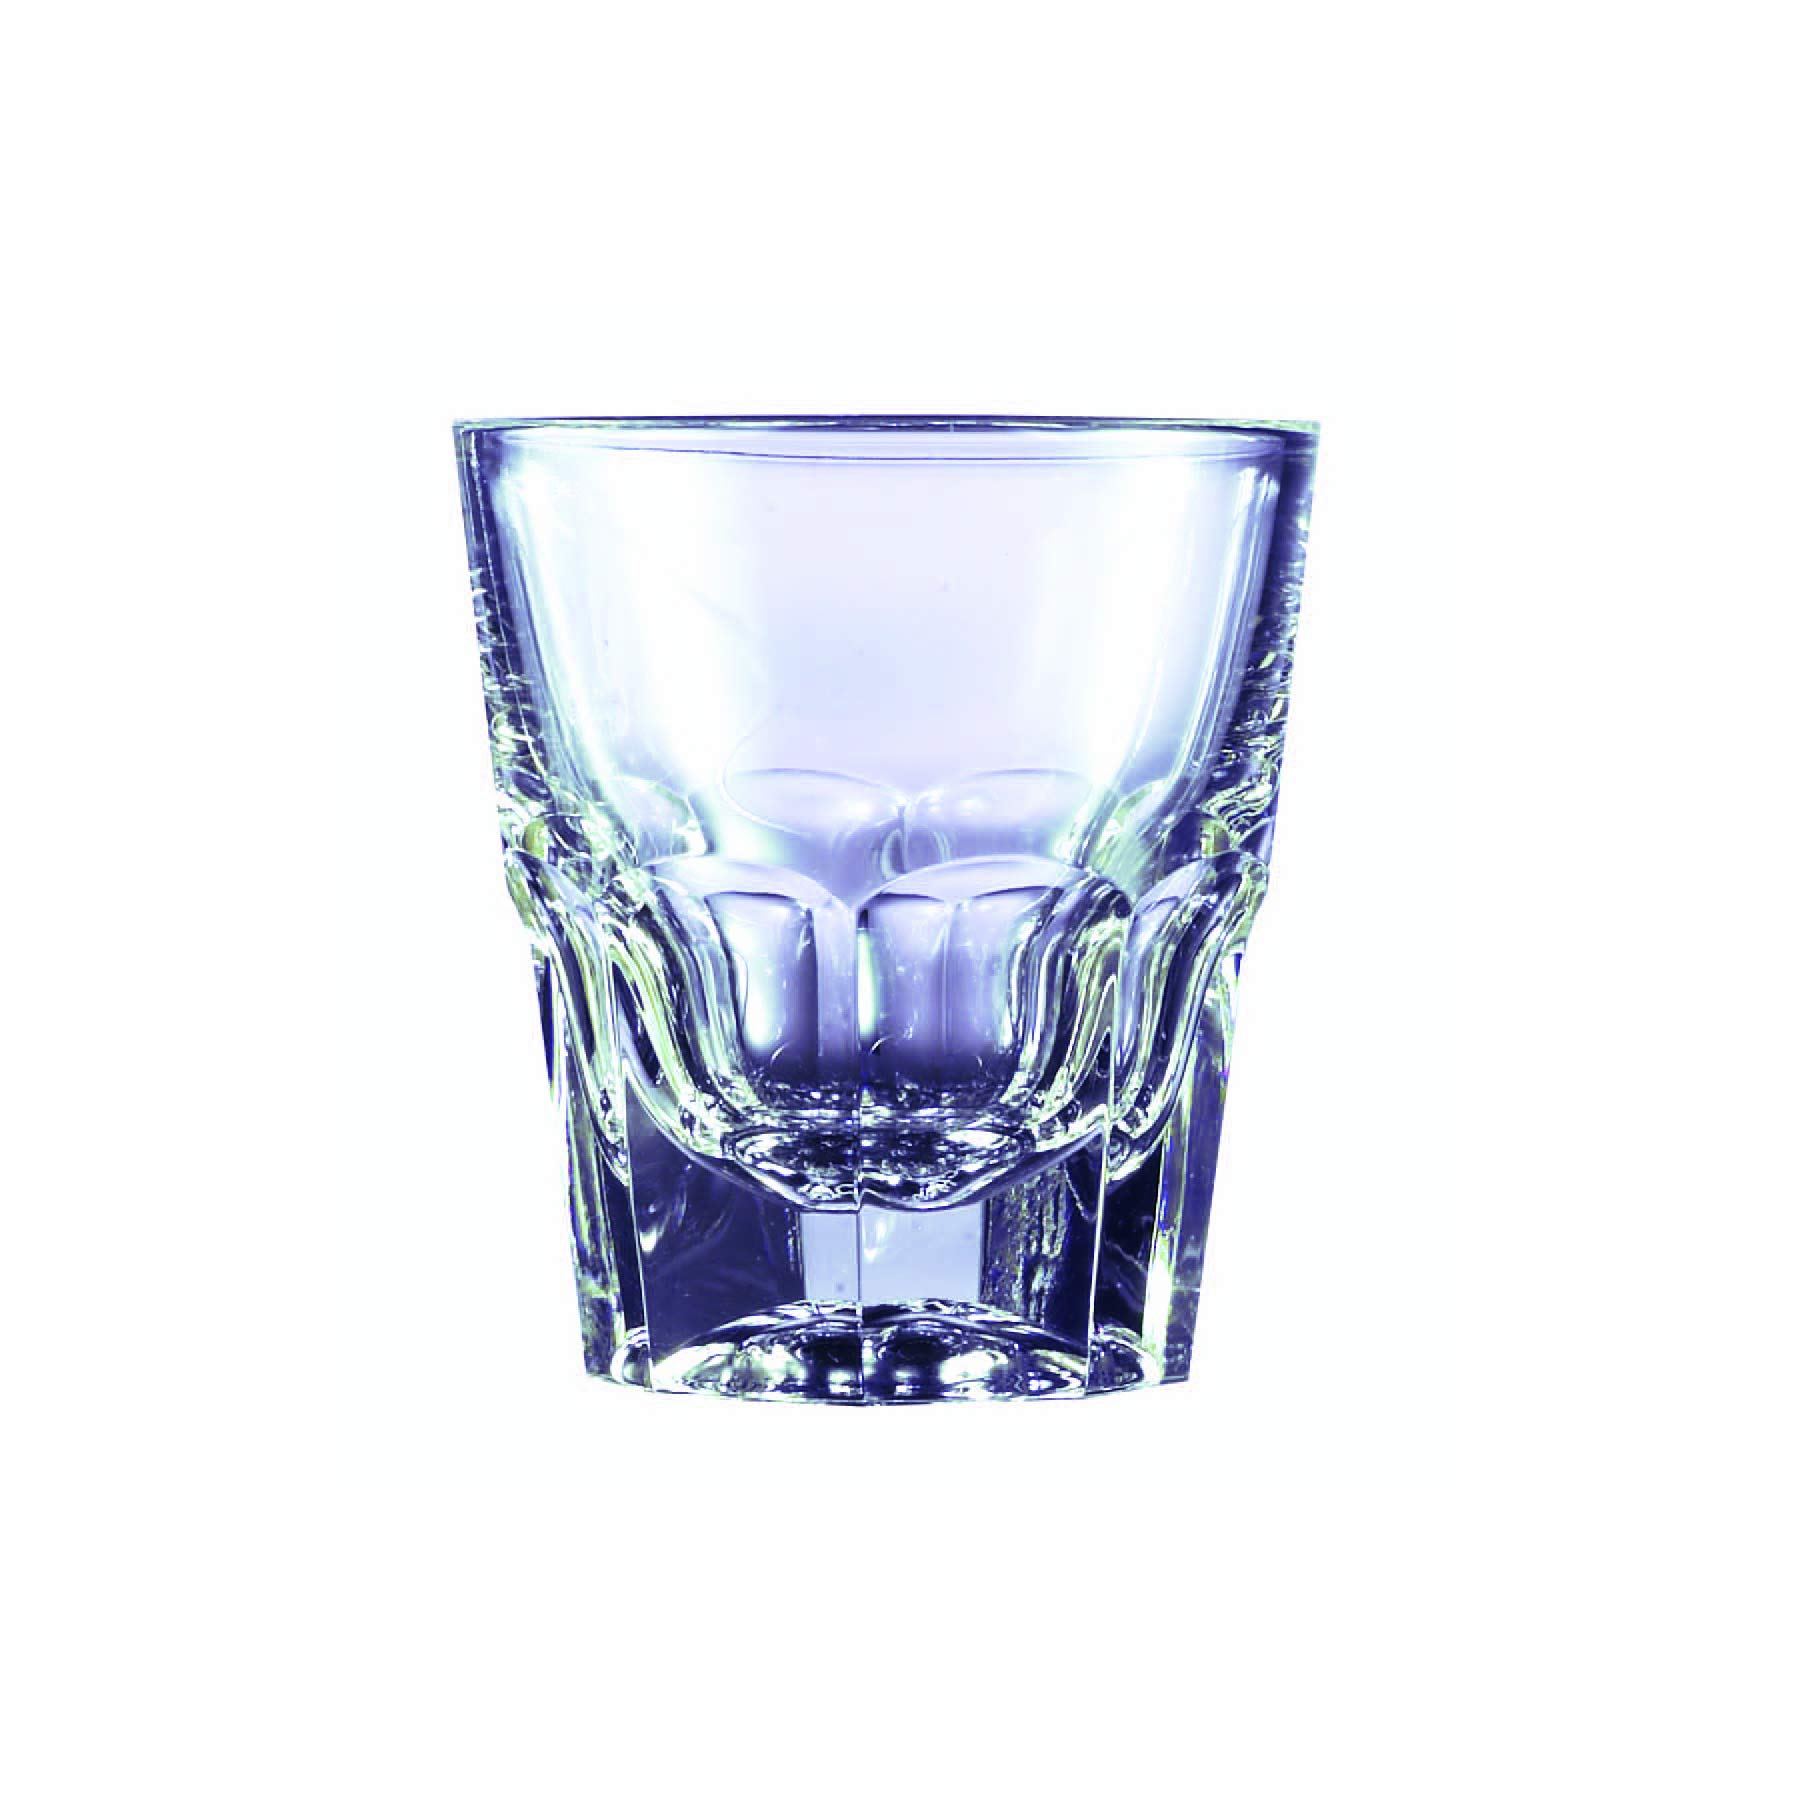 Cardinal J4094 Arcoroc 4.5 Oz. Gotham Rocks Glass - 36 / CS by ARC Cardinal